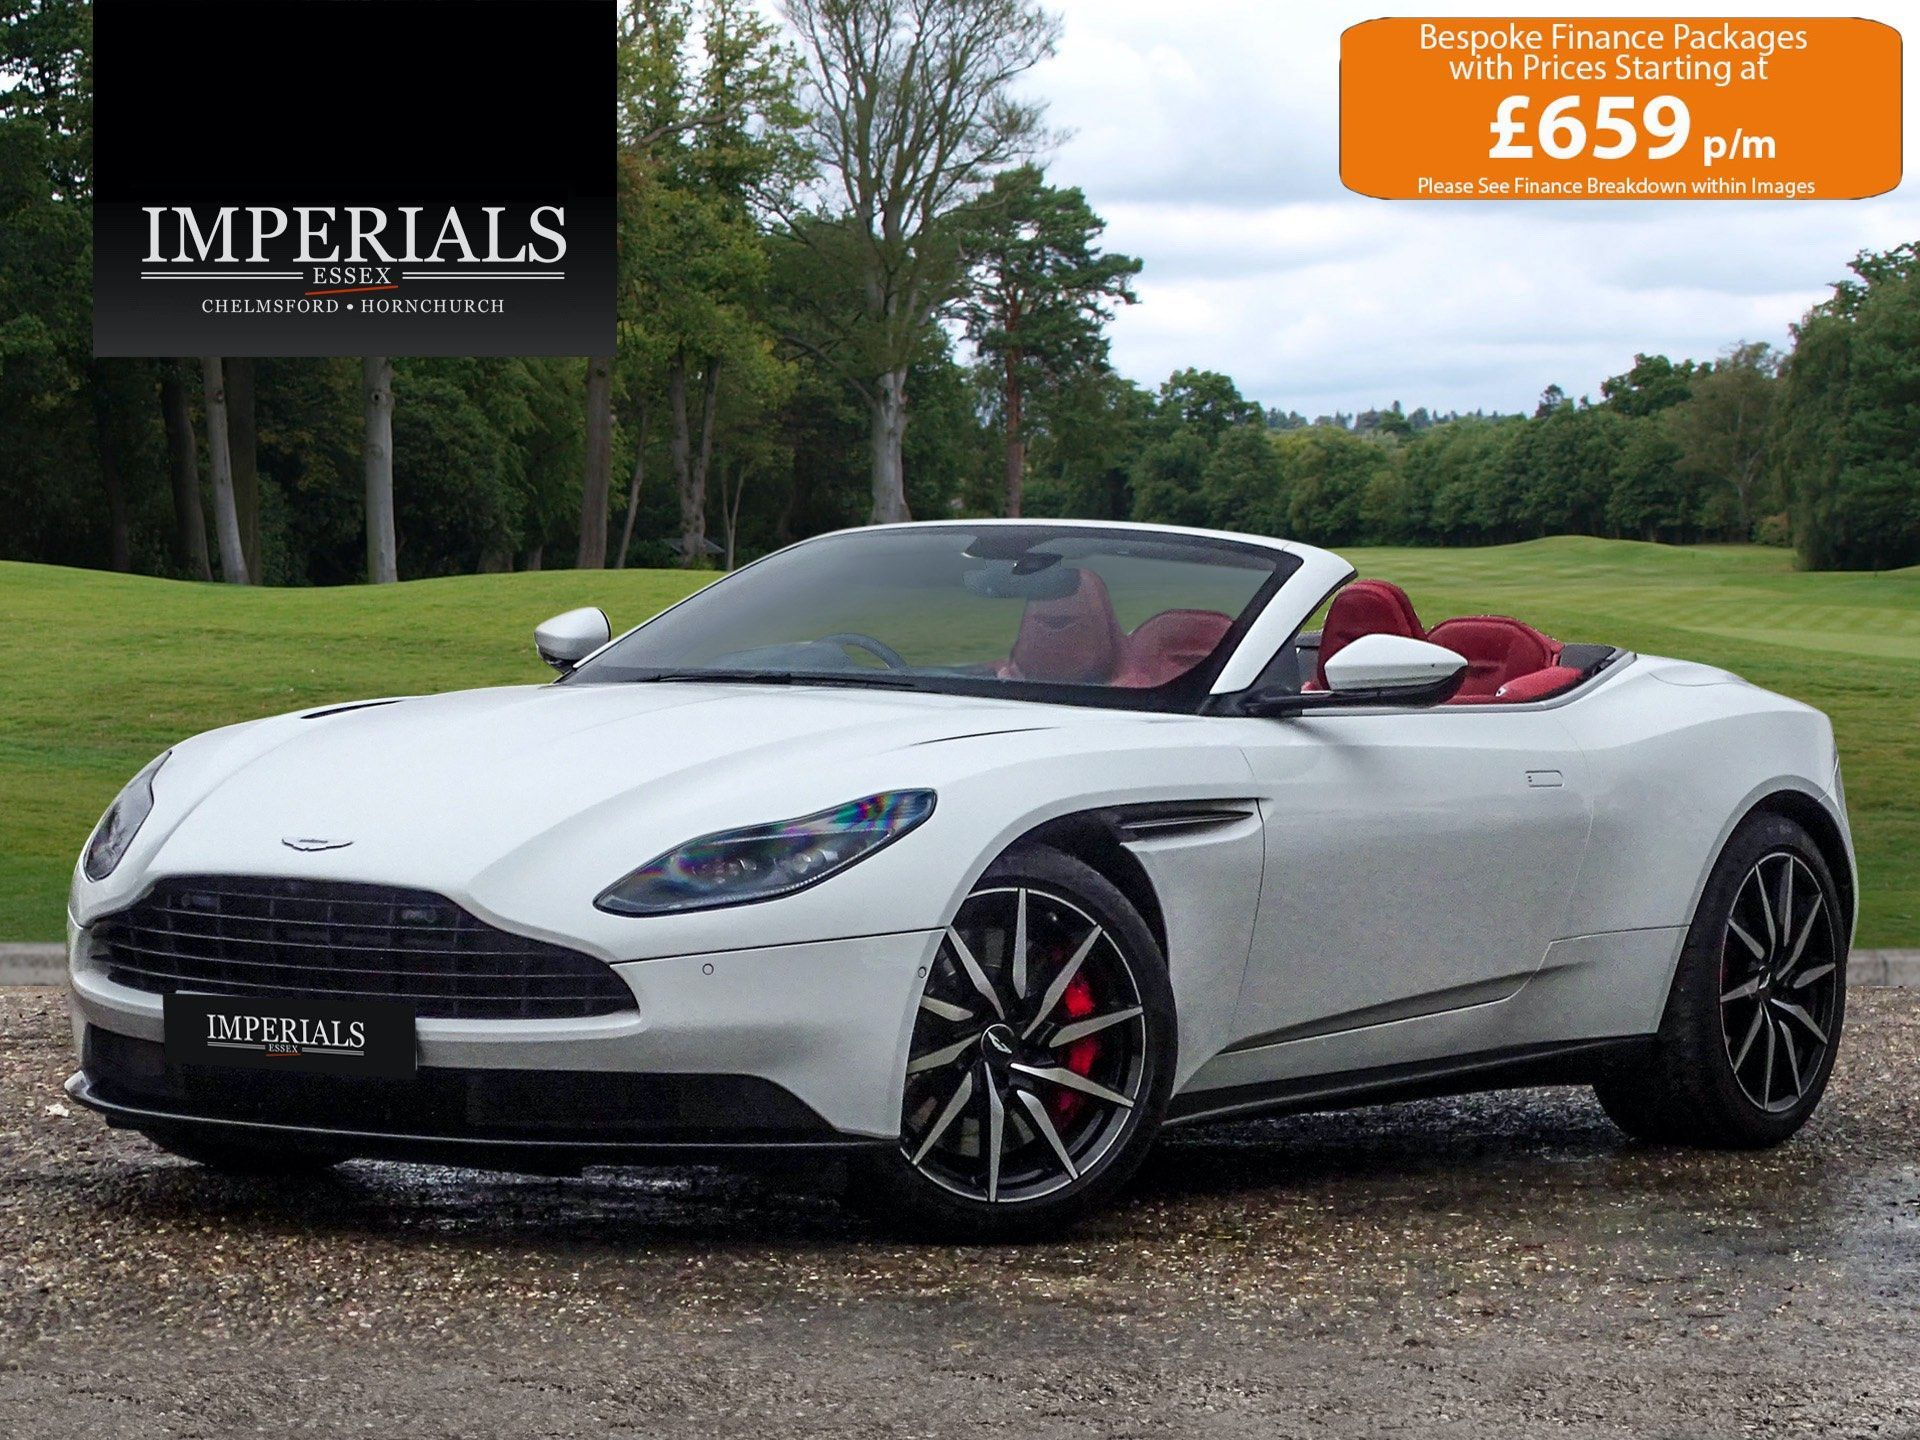 Petrol Aston Martin Db11 Convertible Used Cars For Sale Autotrader Uk